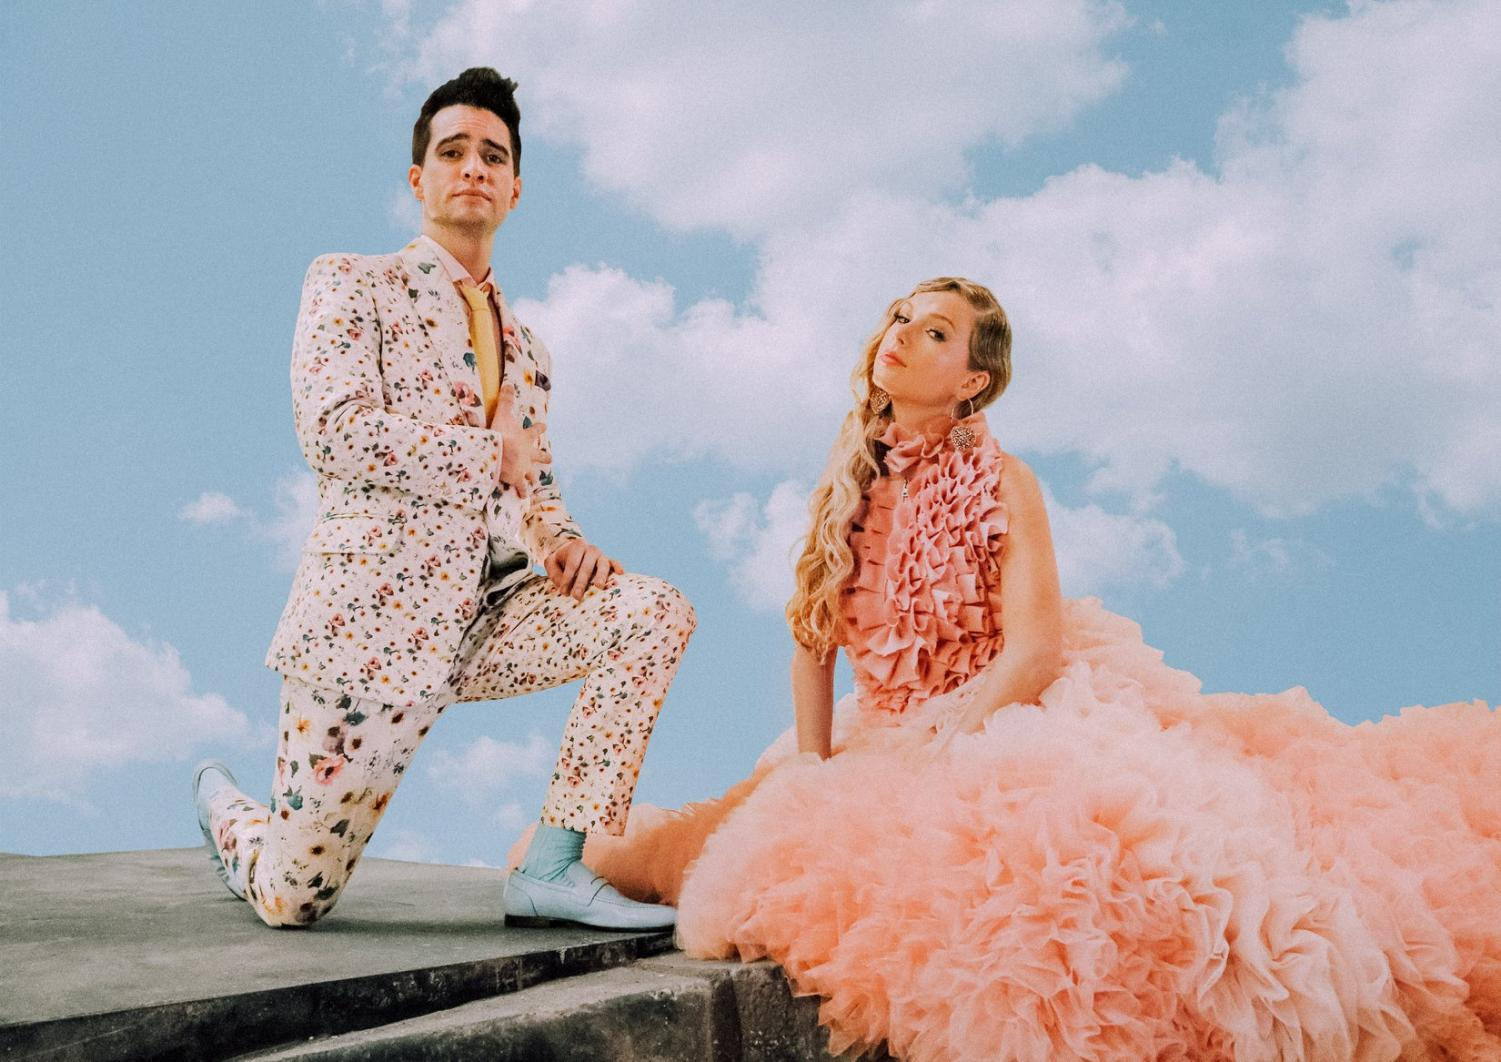 Taylor Swift released her lead single for her seventh album featuring Brendon Urie on April 26, 2019.